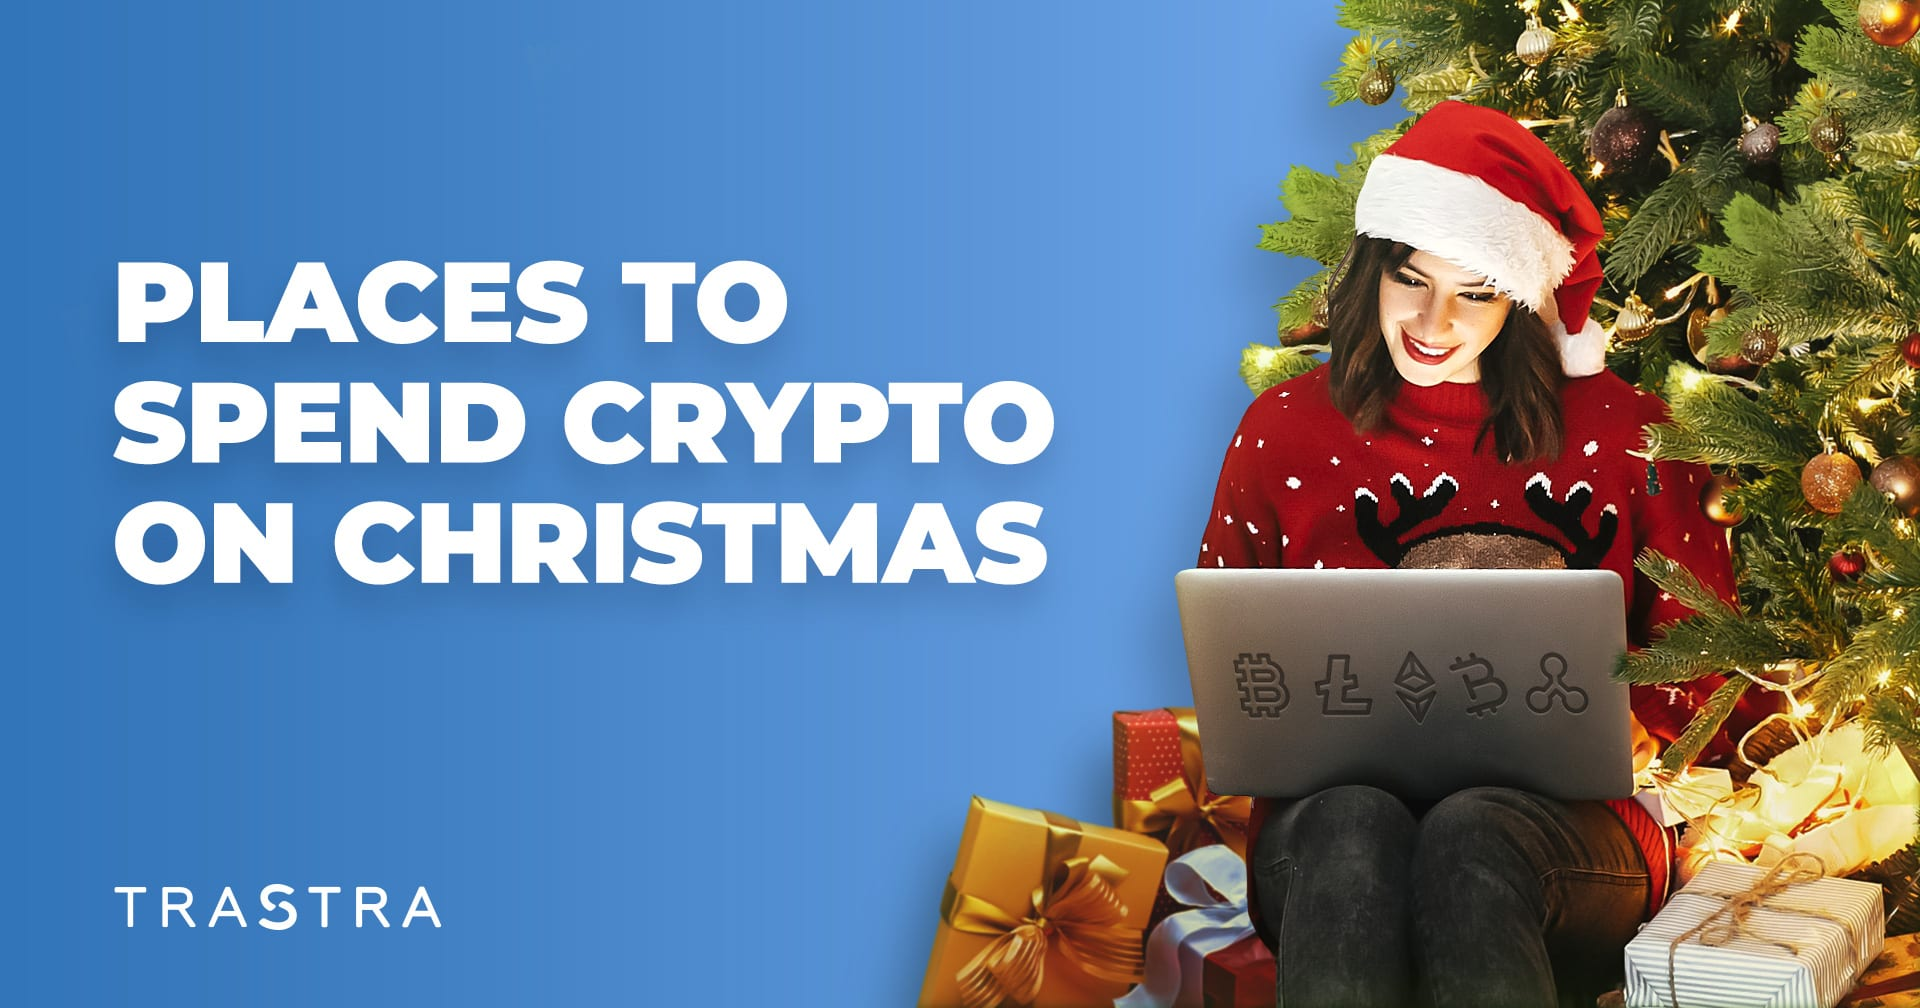 сhristmas purchases, places to spend crypto, places to spend bitcoin, christmas crypto purchases, shop with crypto, shop with bitcoin, places accept crypto, places accept bitcoin, crypto payments, bitcoin payments, use trastra card, online crypto purchases, offline crypto purchases, christmas shopping, buy gifts with trastra card